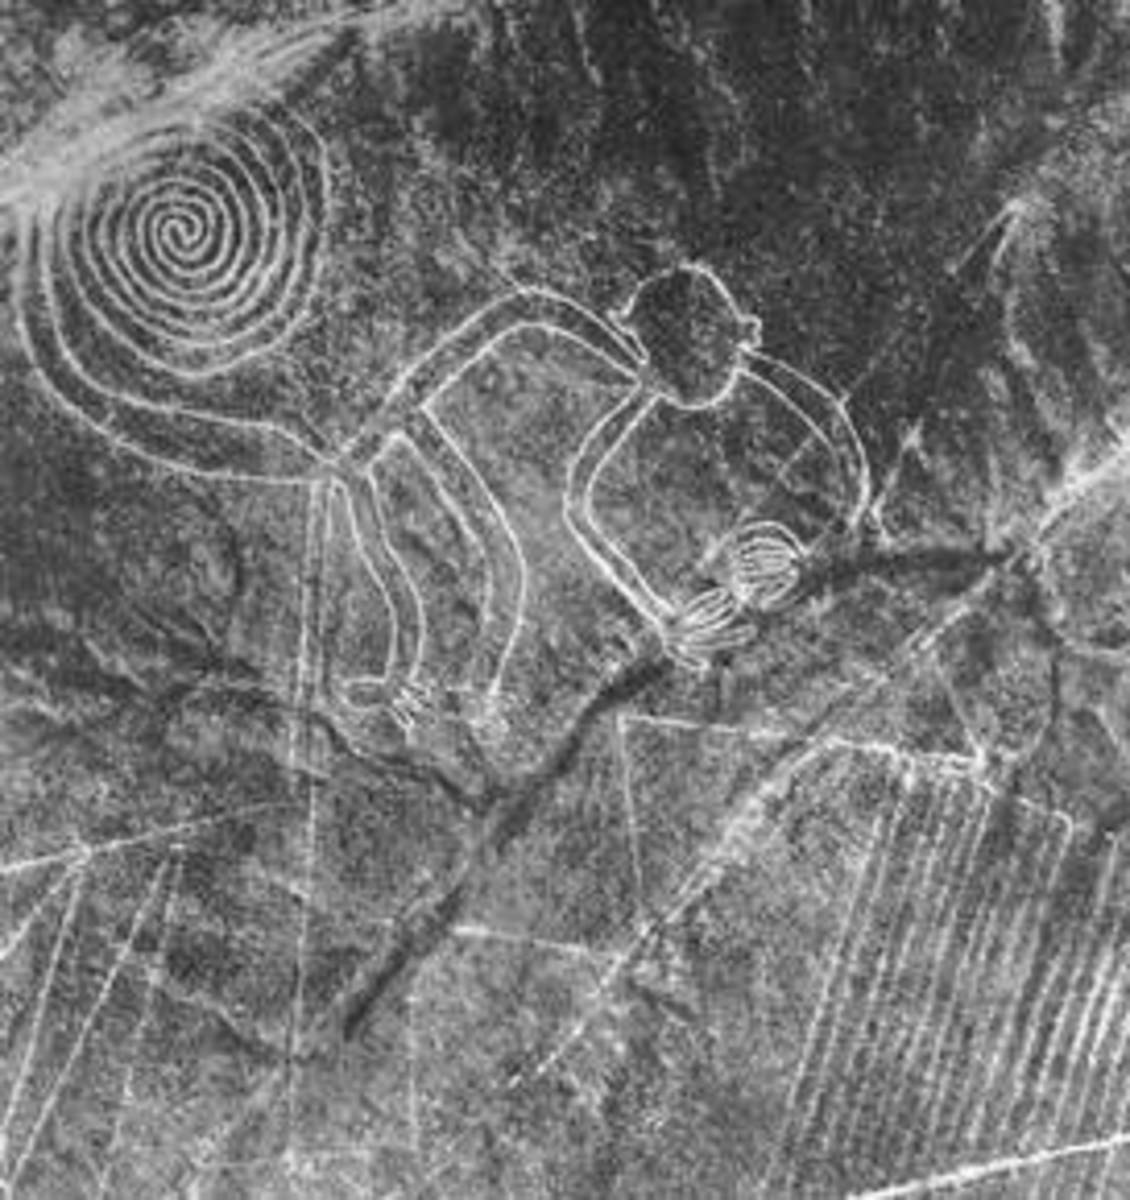 Nasca geoglyph of a monkey